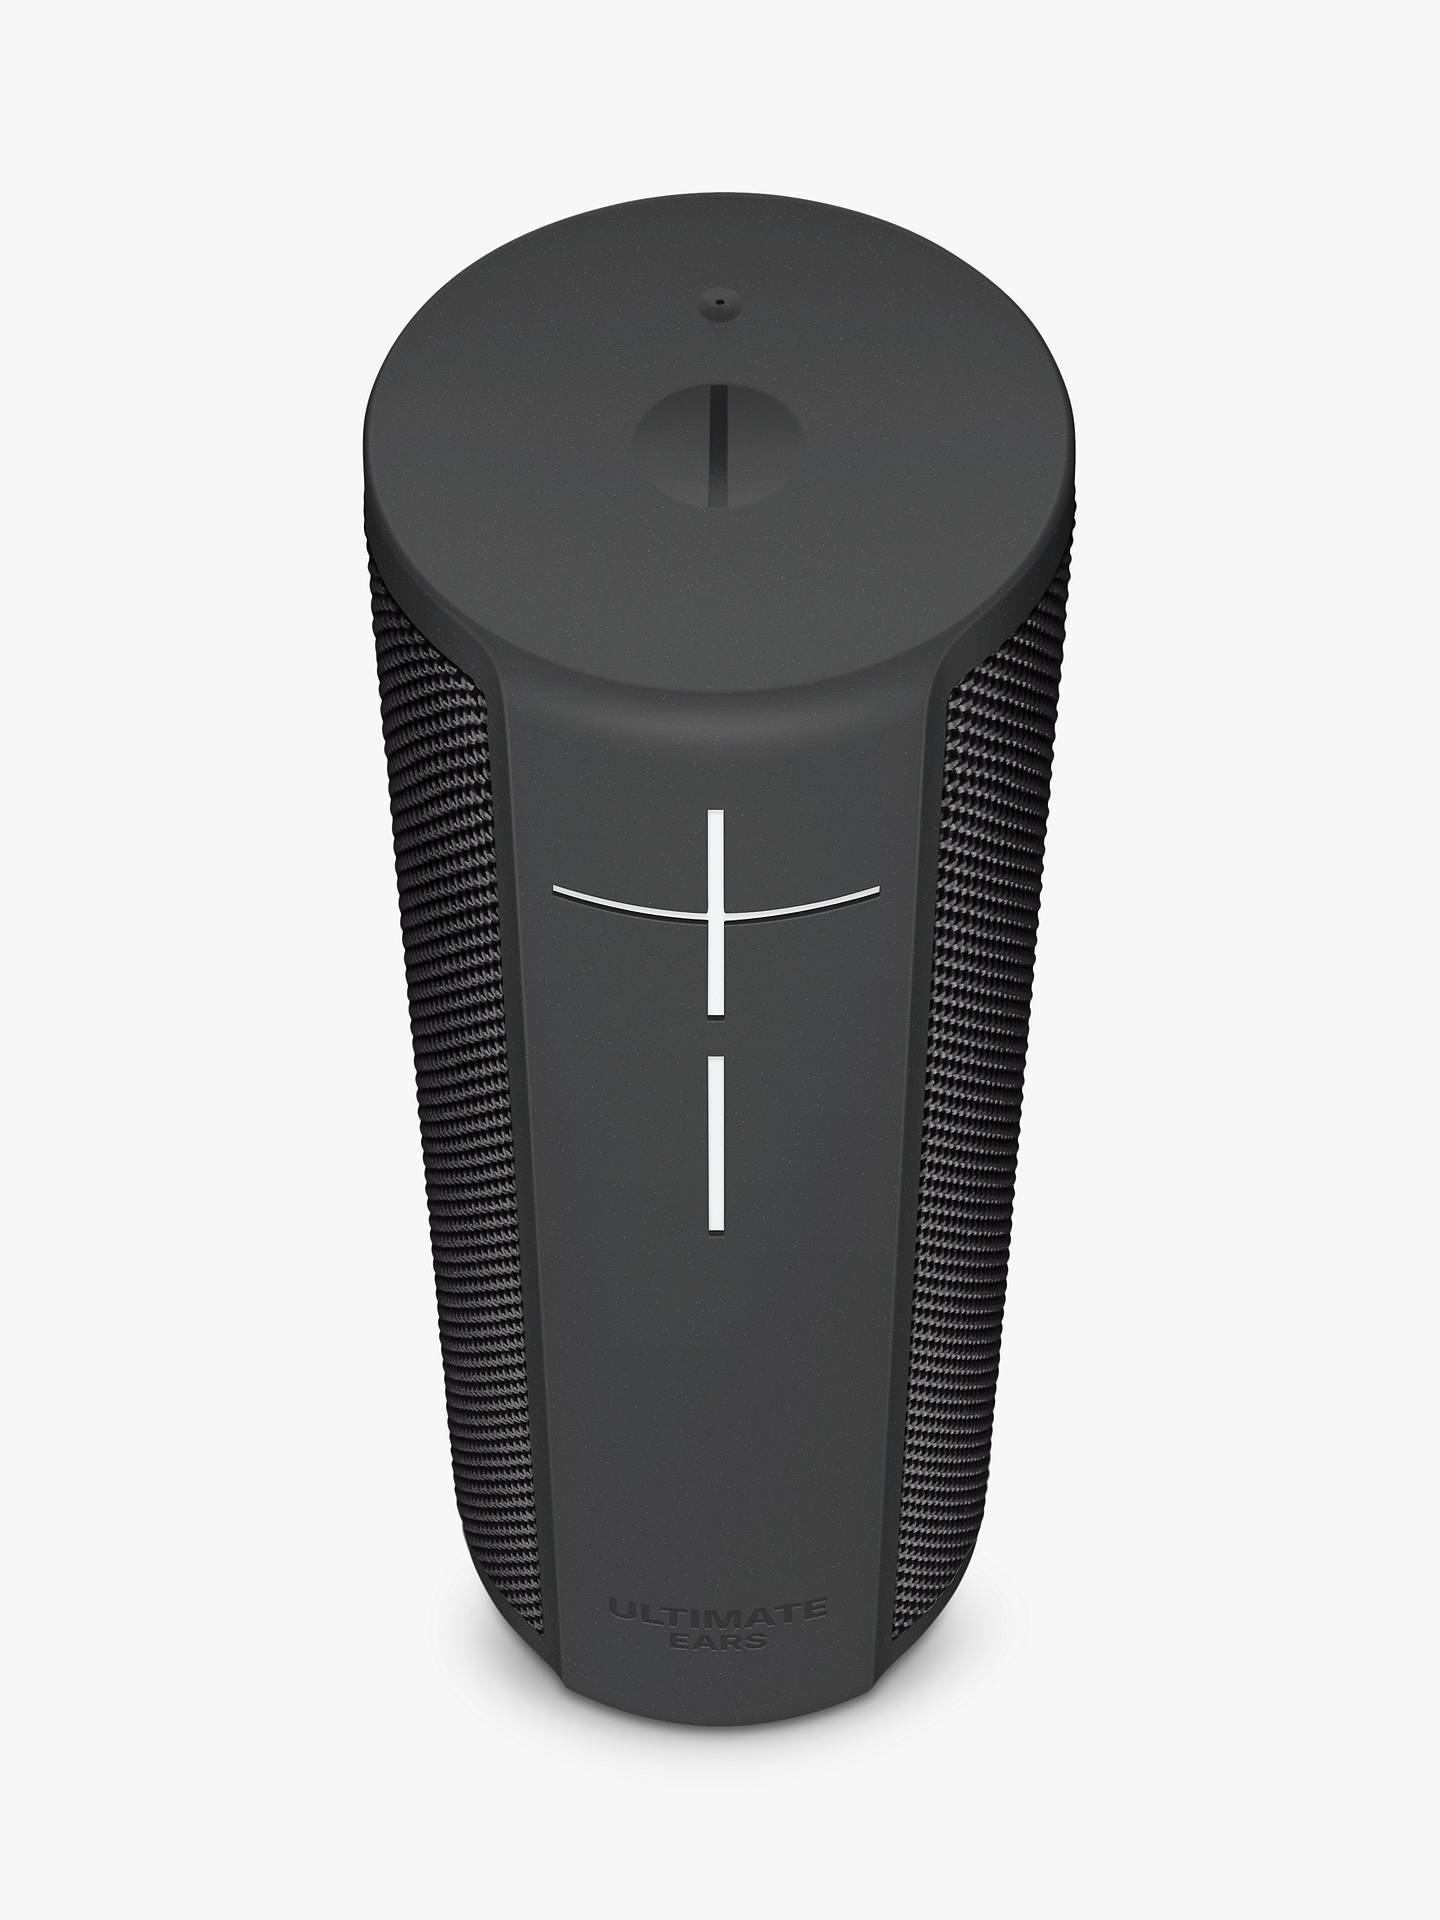 BuyUltimate Ears BLAST Bluetooth Wi-Fi Waterproof Portable Speaker with Alexa Voice Recognition & Control, Black Online at johnlewis.com